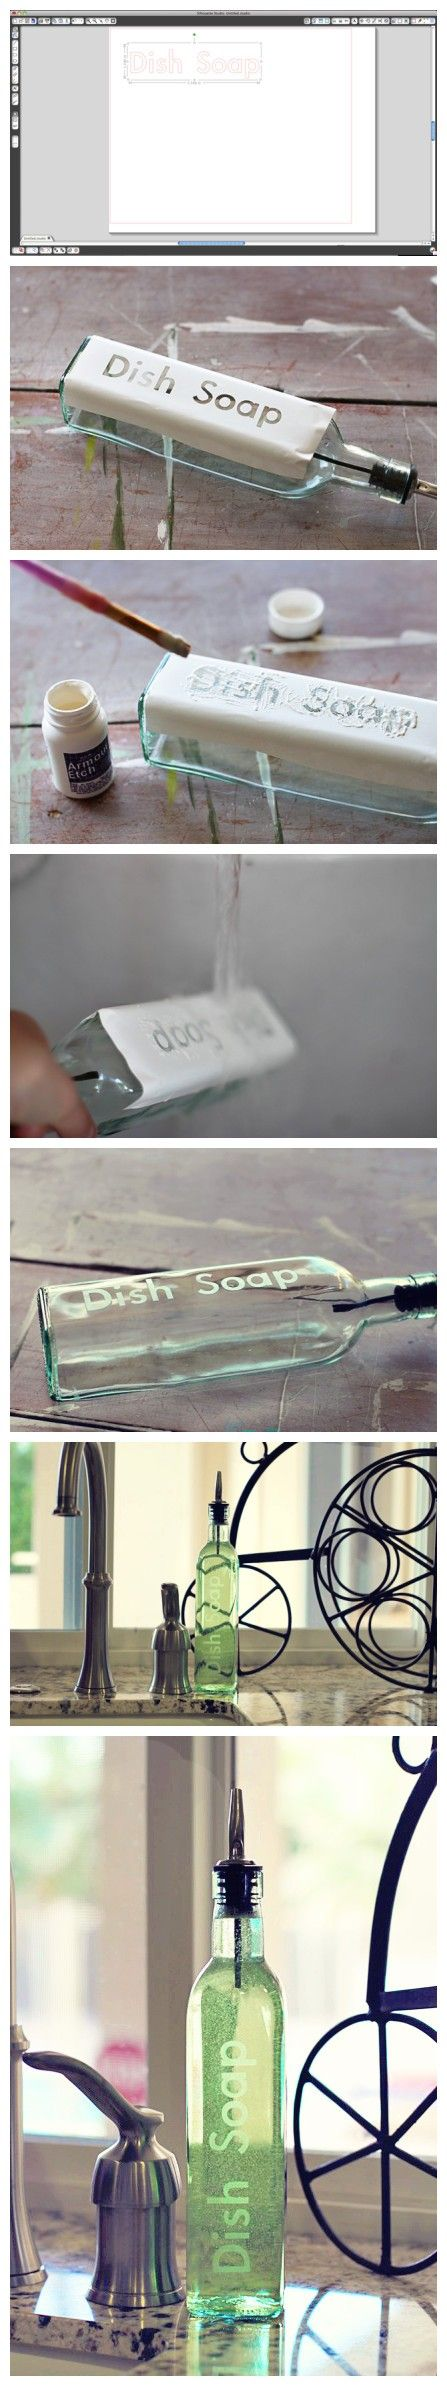 Lettering on glass bottles.